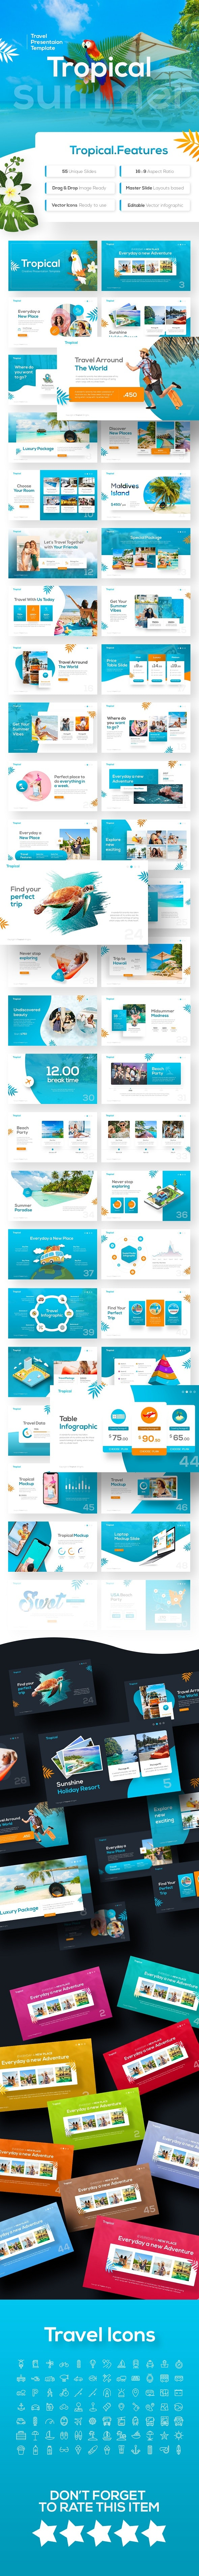 Tropical Travel Presentation Template - PowerPoint Templates Presentation Templates